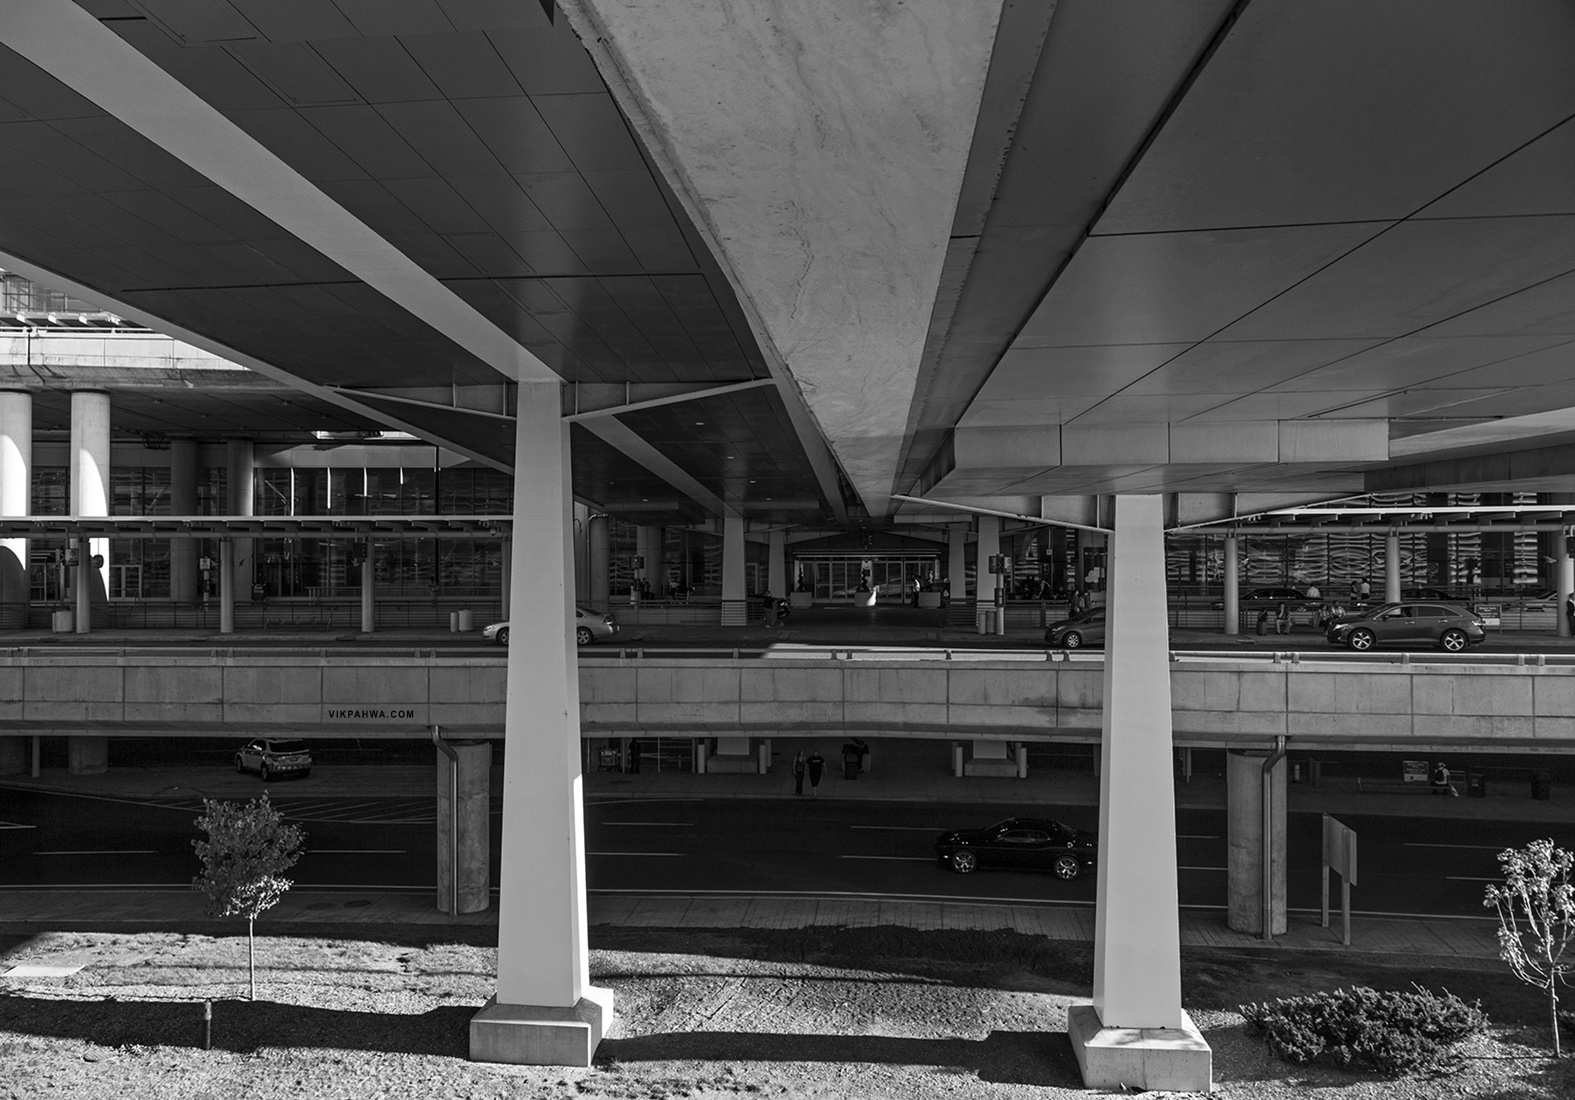 20161027. A parkade perspective below a pair of pedestrian bridg